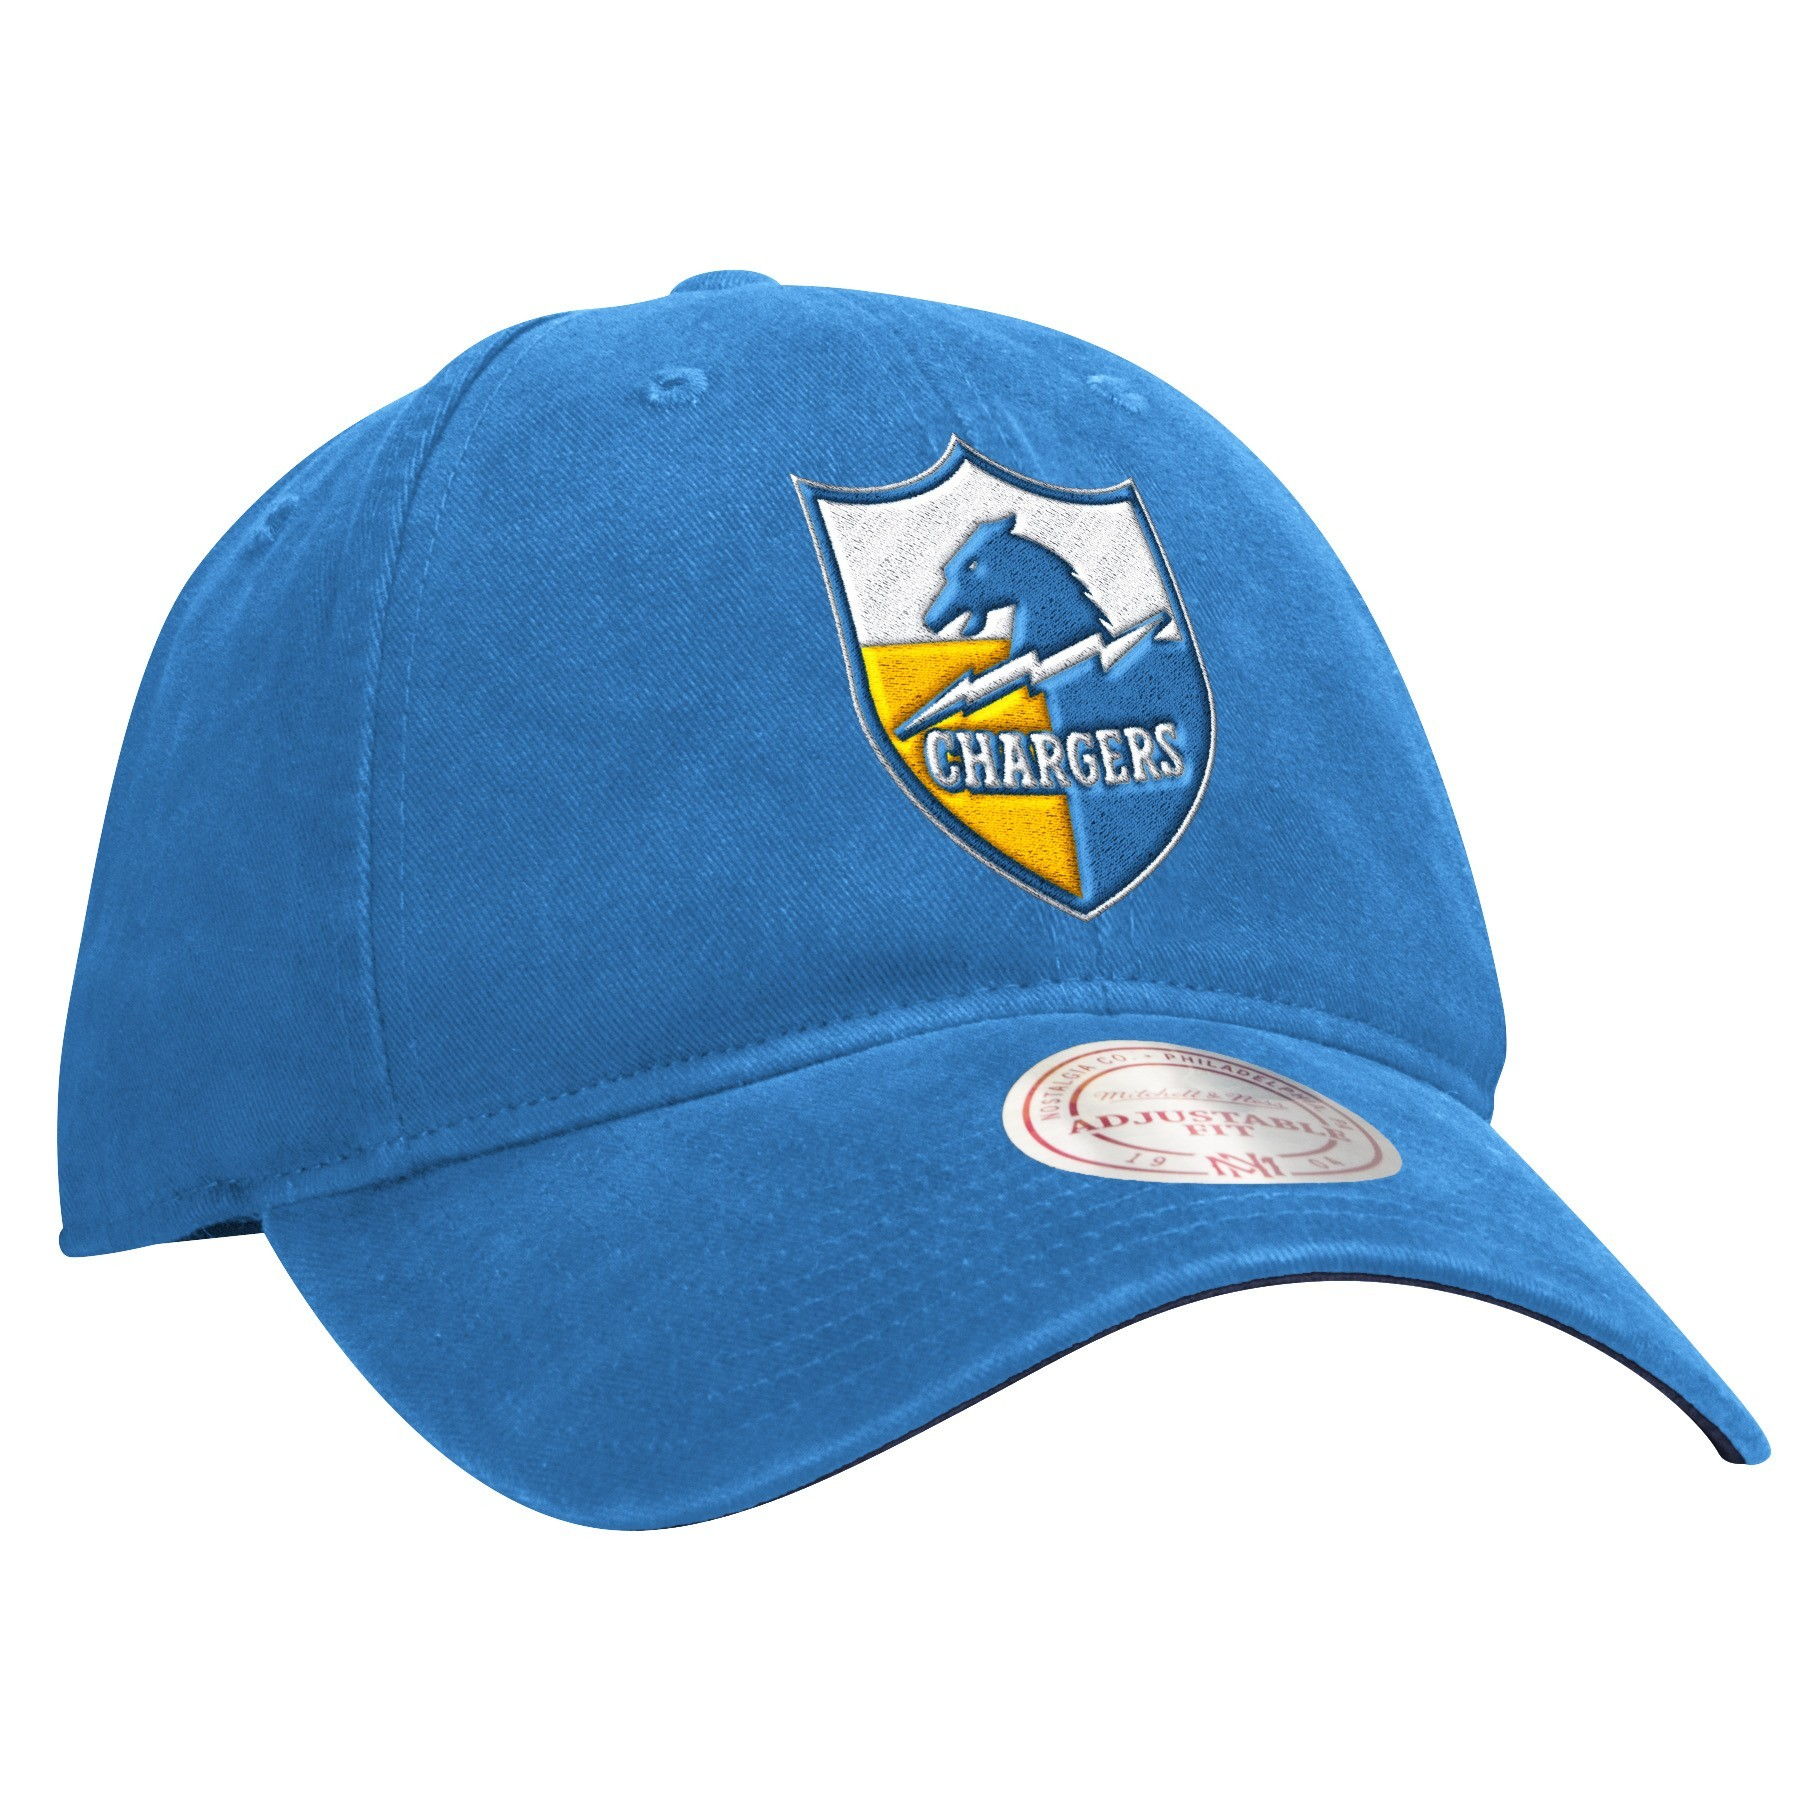 San Diego Chargers Caps: San Diego Chargers Mitchell & Ness NFL Throwback Felt Logo